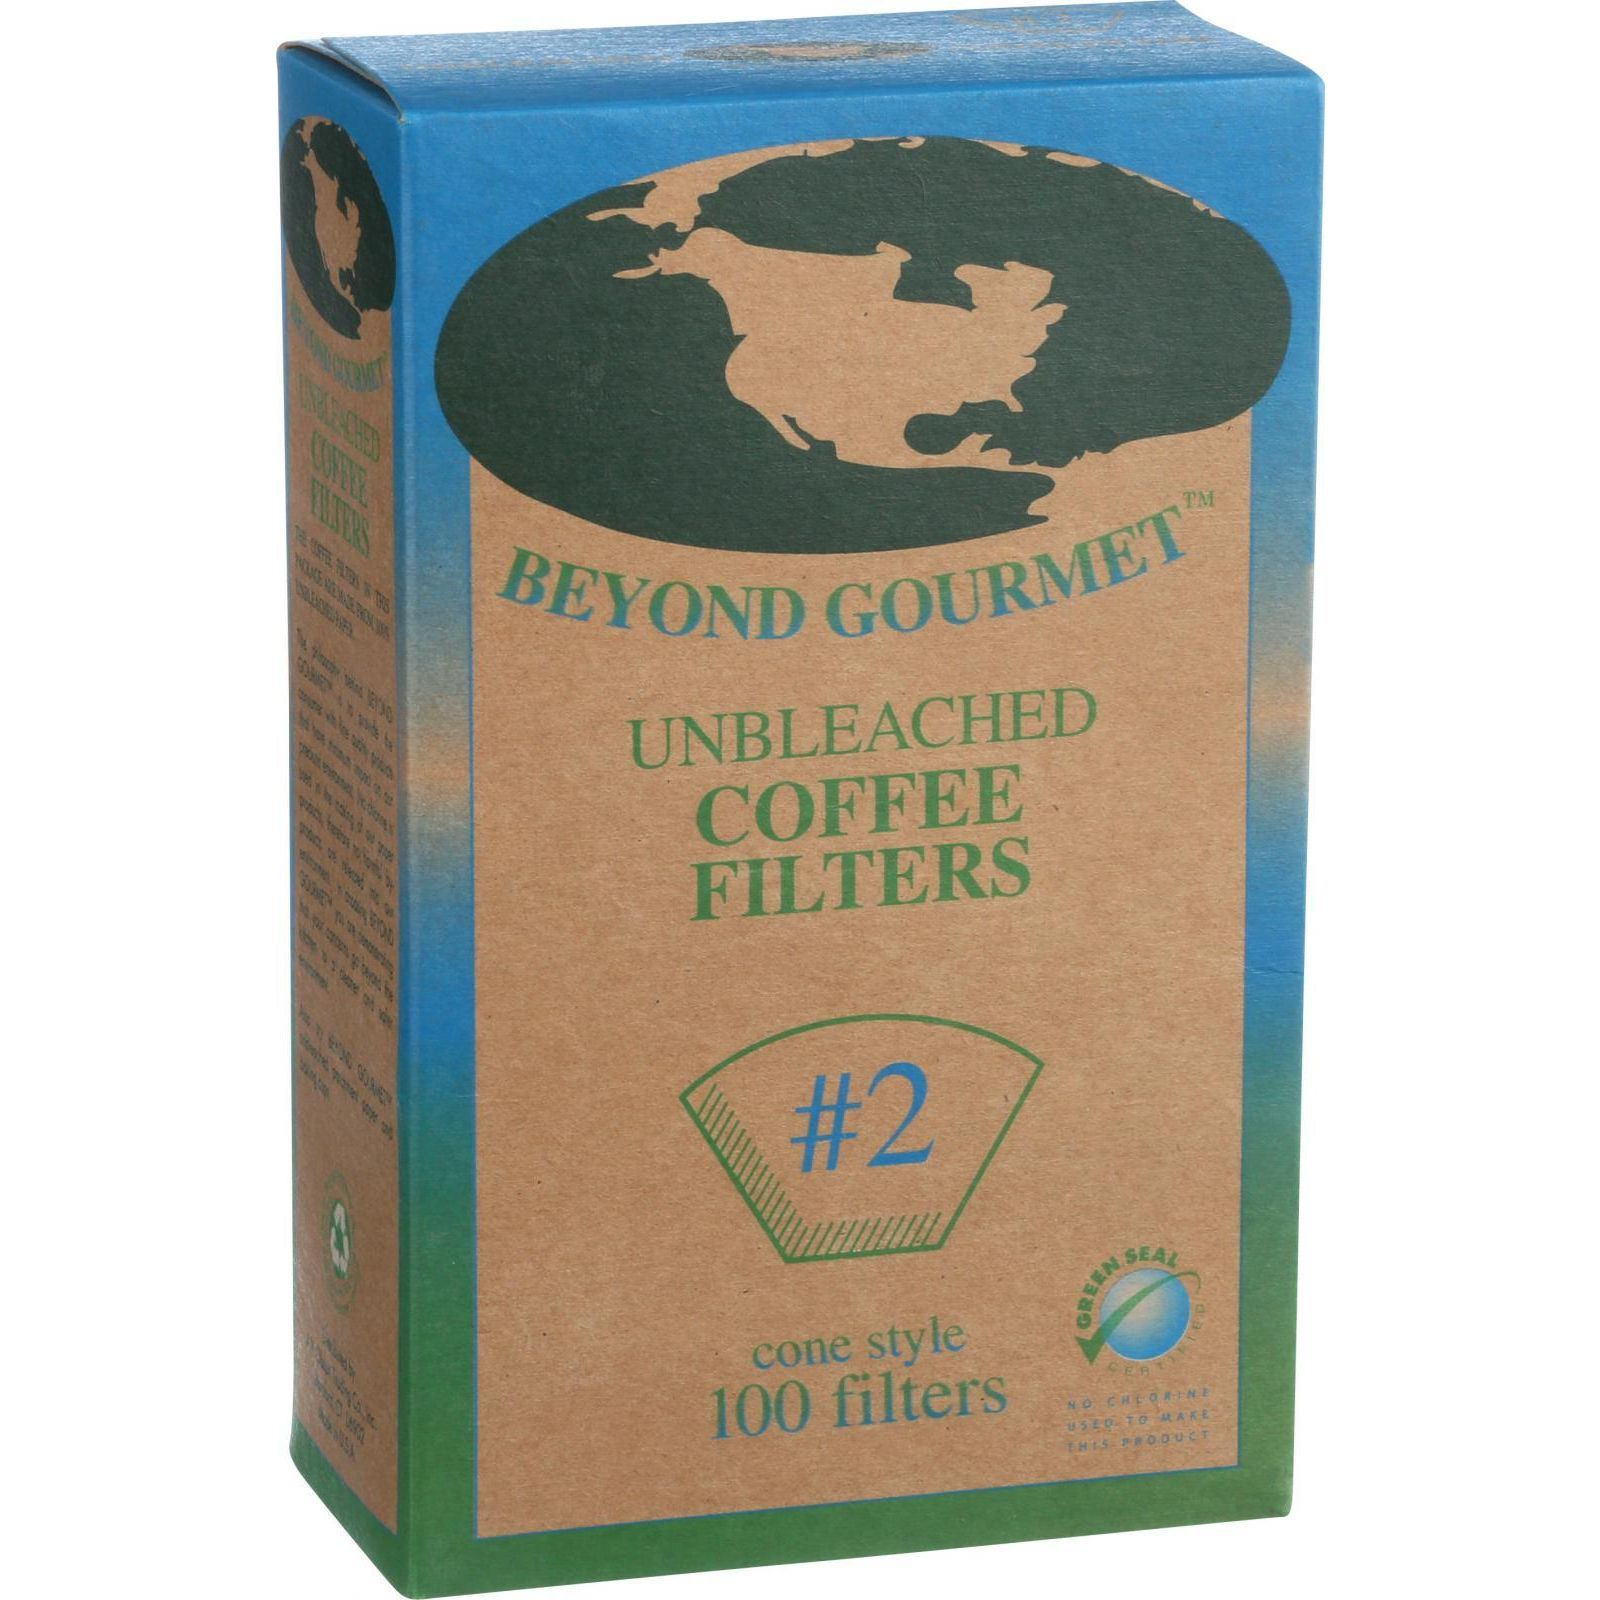 Beyond Gourmet Coffee Filters Cone Unbleached Number 2 100 Count by Beyond Gourmet